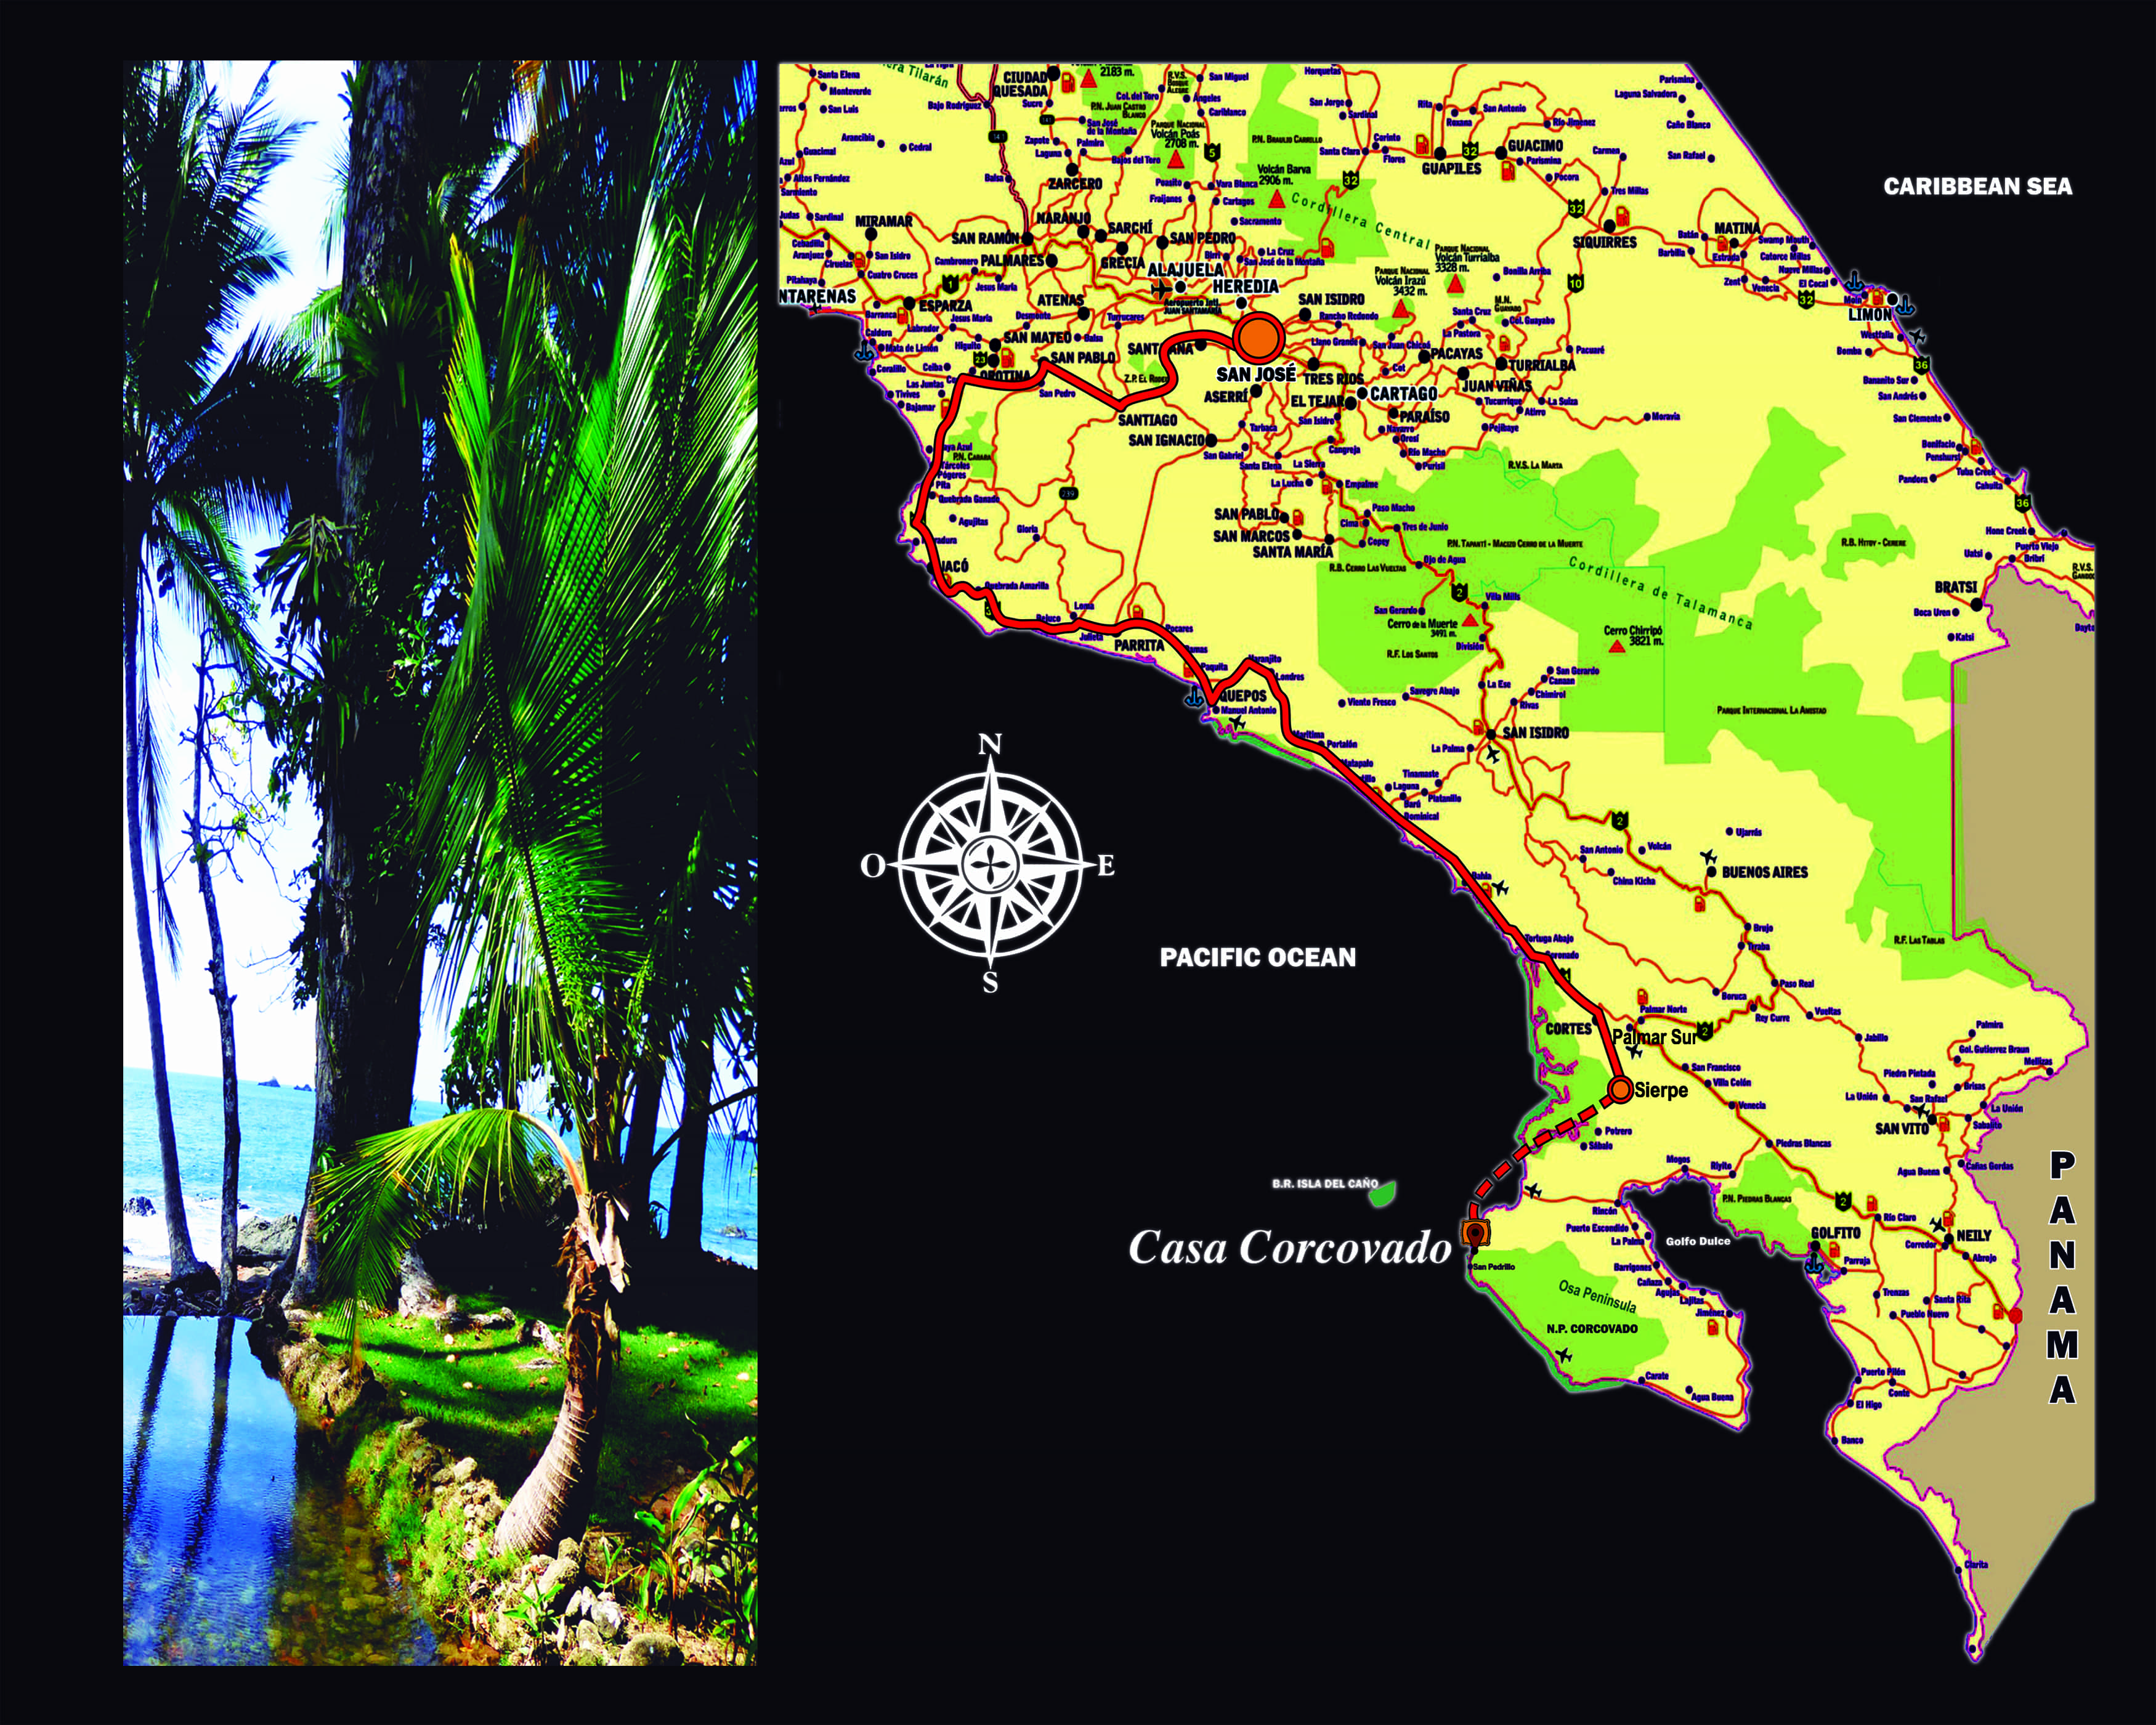 images/Corcovado/002_MAP.jpg